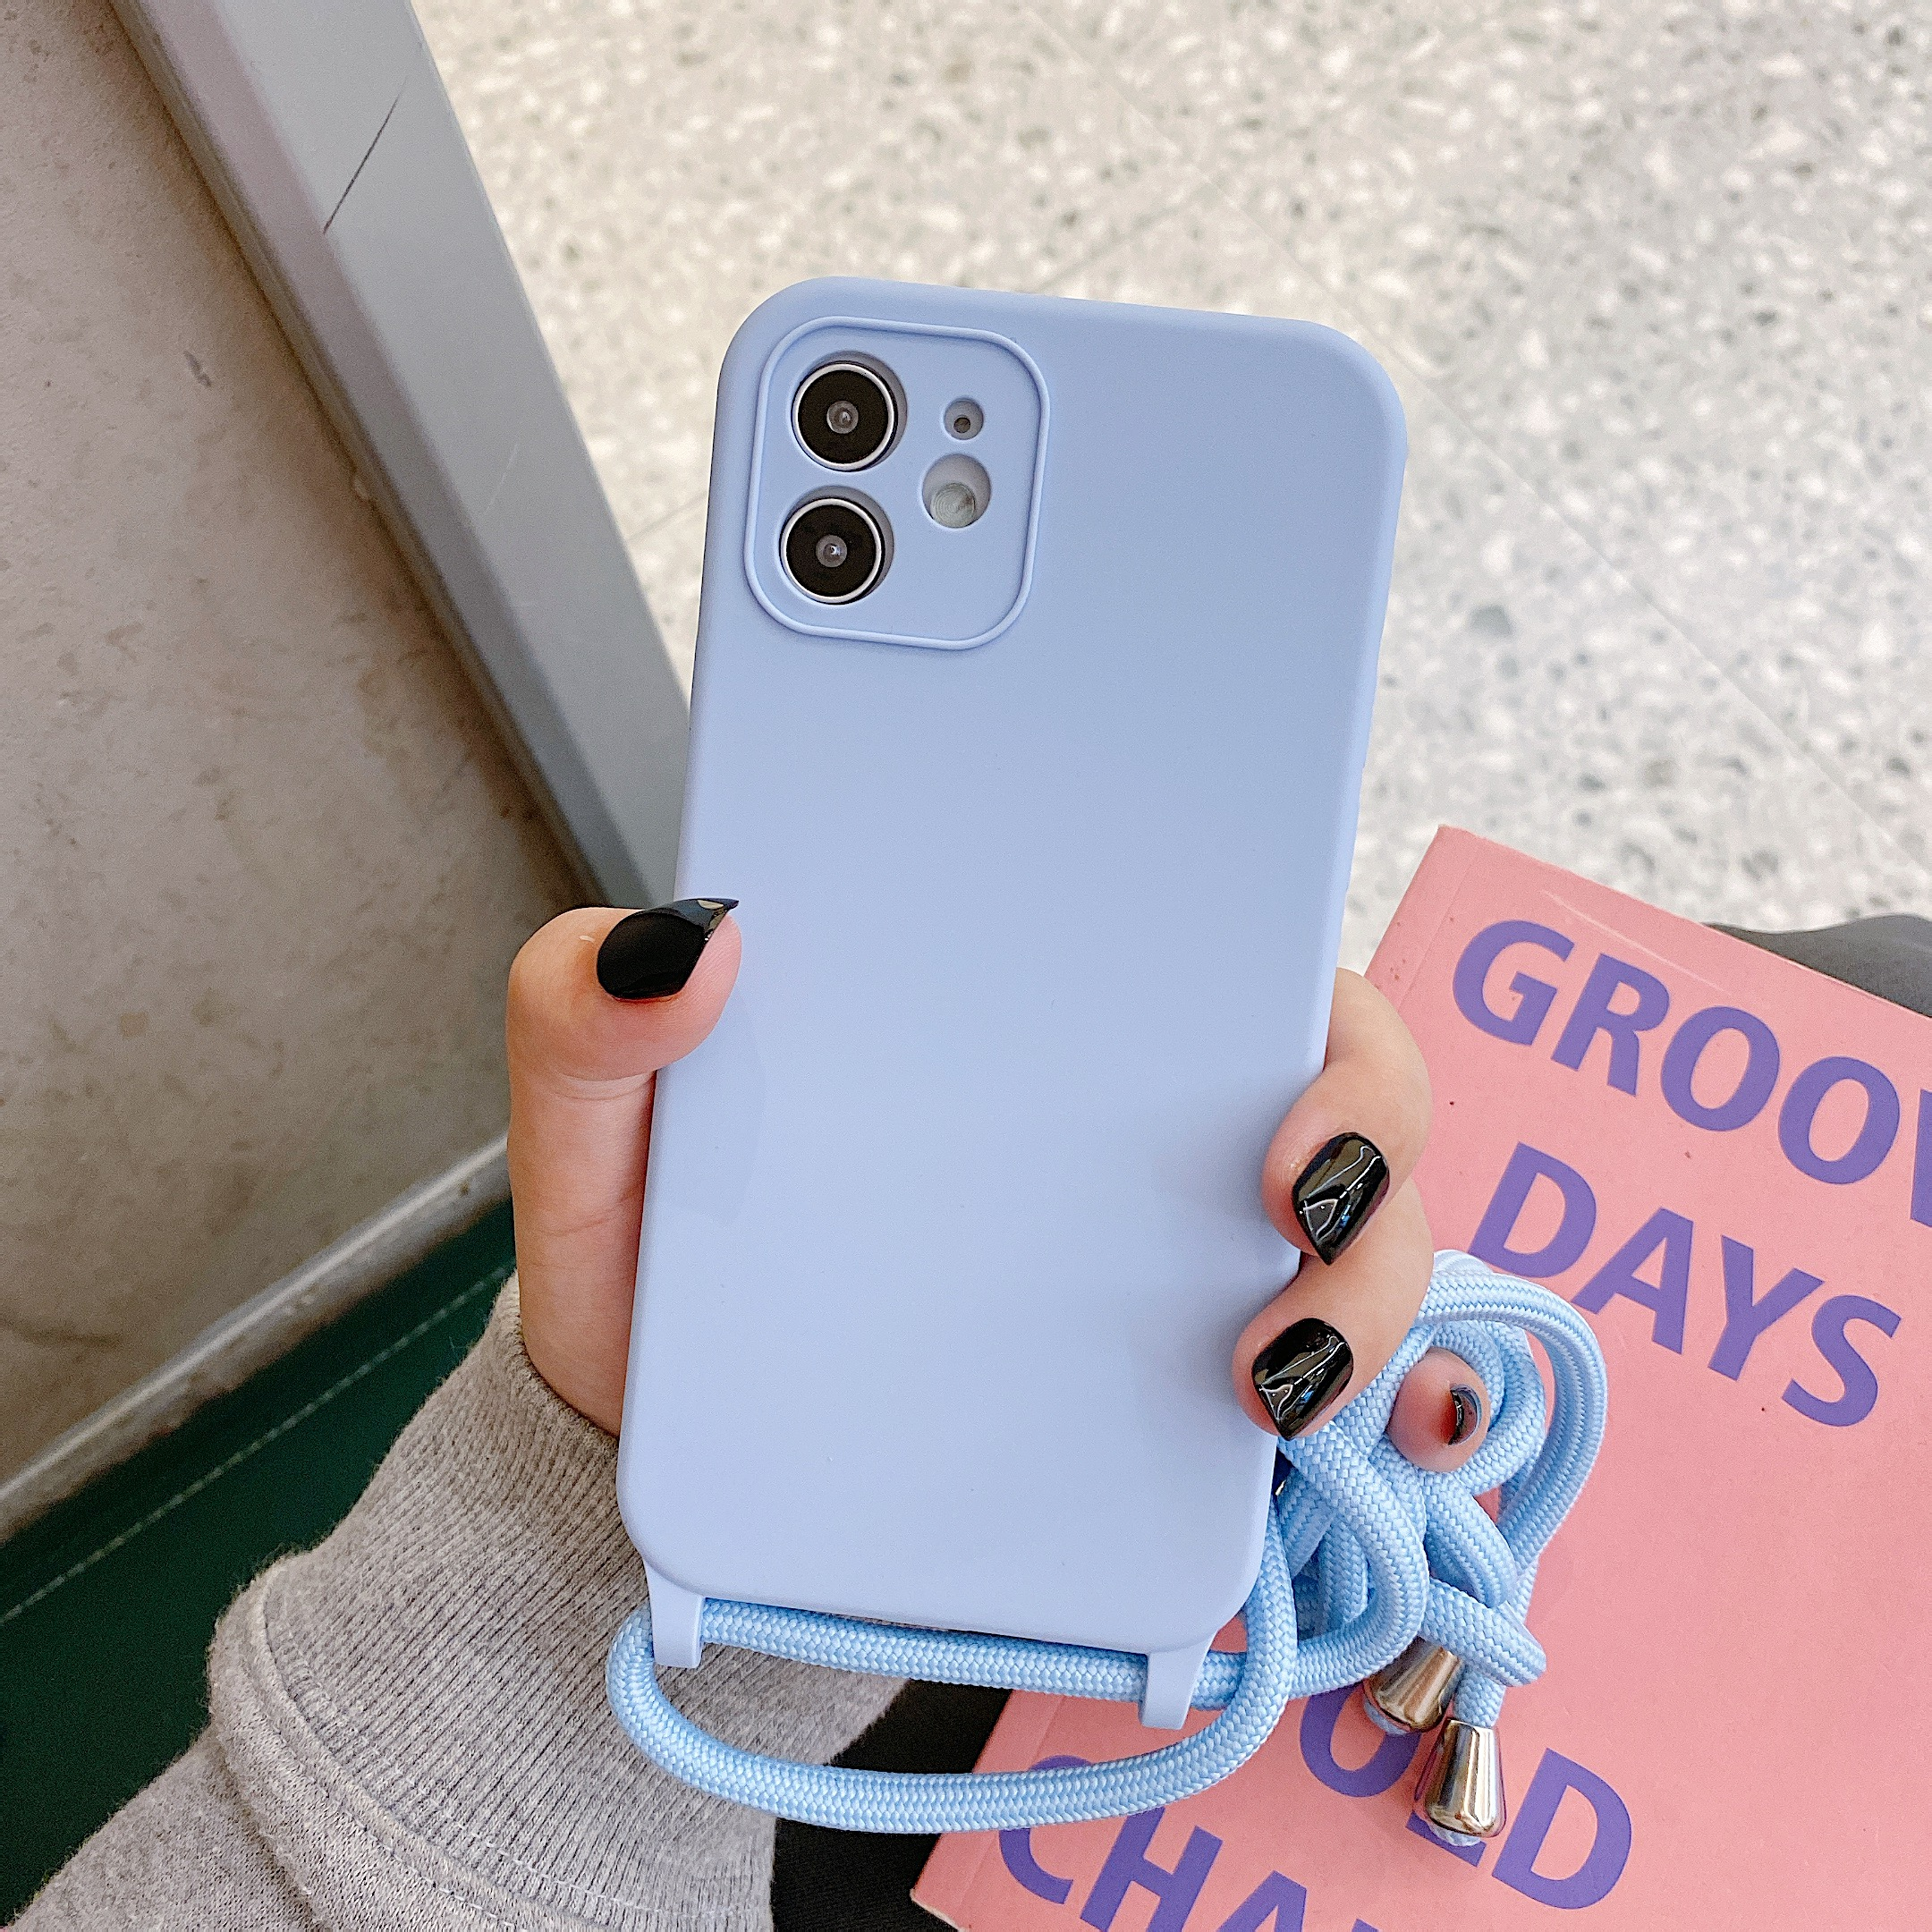 Crossbody Lanyard Liquid Silicone Case For iPhone 12 11 Pro Max XS X XR SE 2020 8 7 Plus Holder Neck Strap Cord Soft Color Cover 3